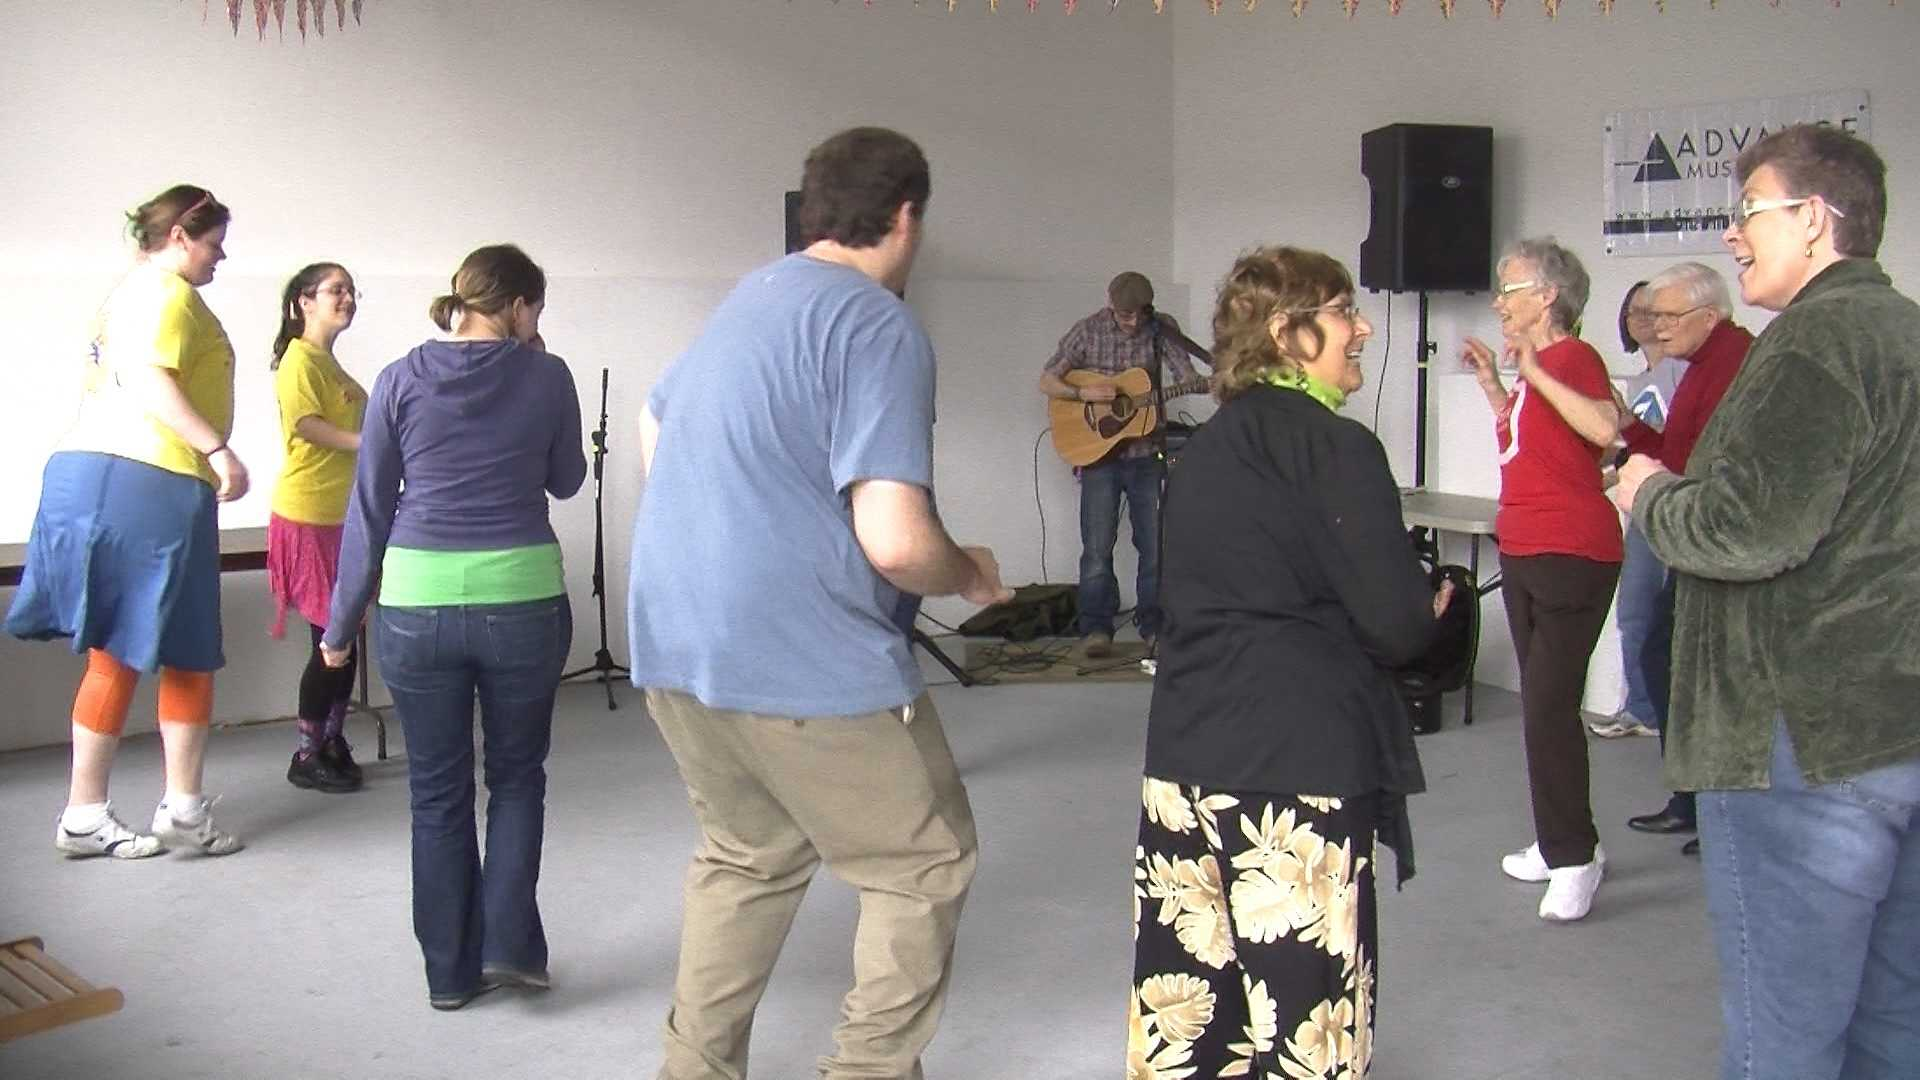 A group in Winooski is dancing non-stop for a cause and wants company.